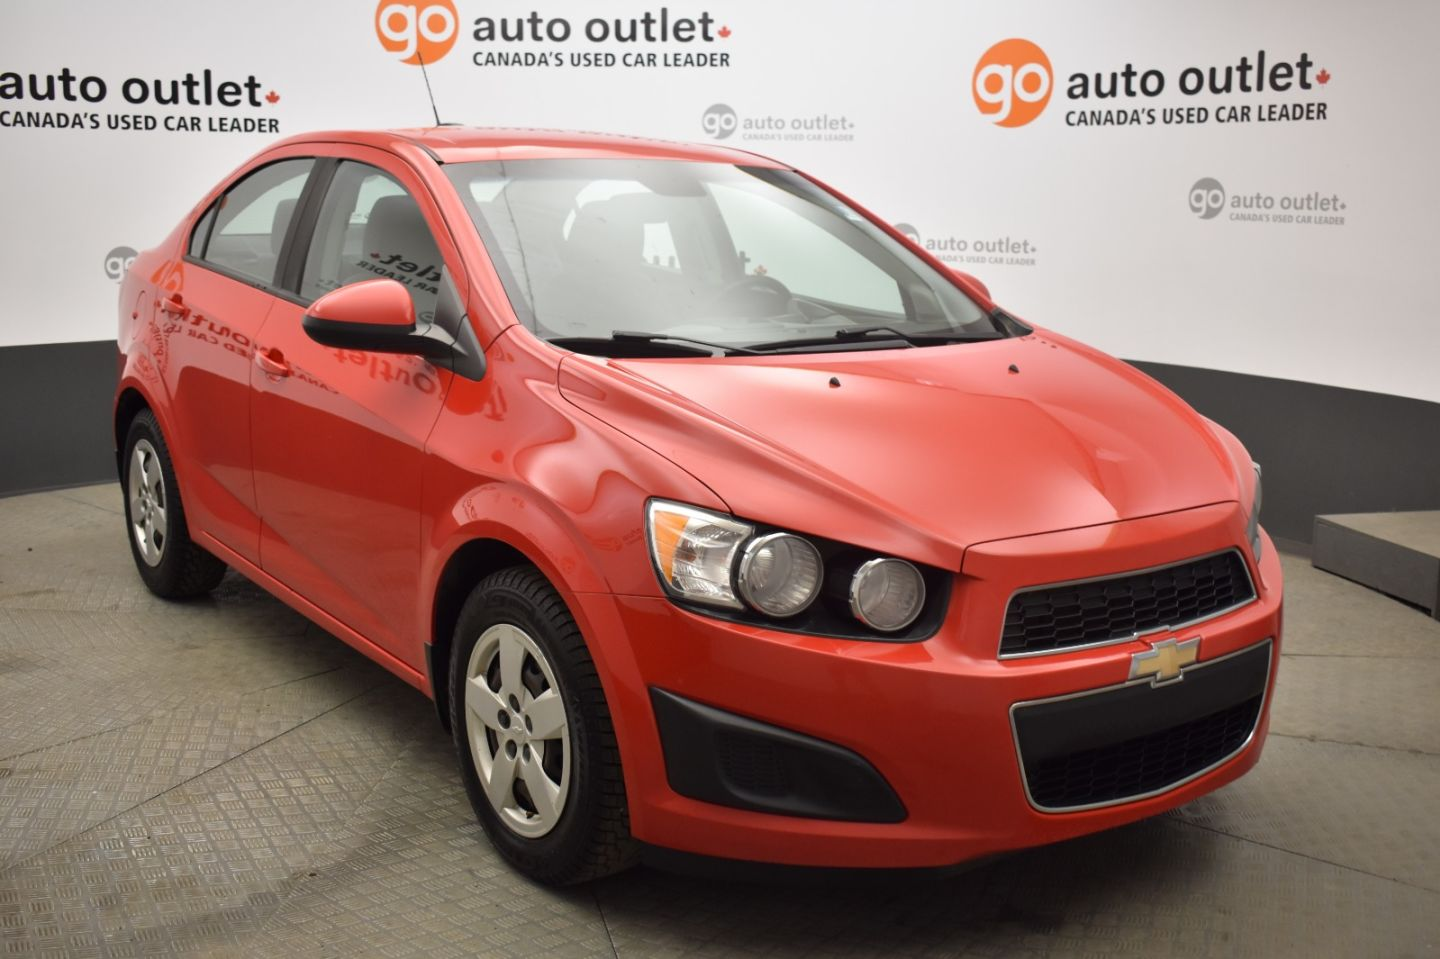 2015 Chevrolet Sonic LS for sale in Leduc, Alberta